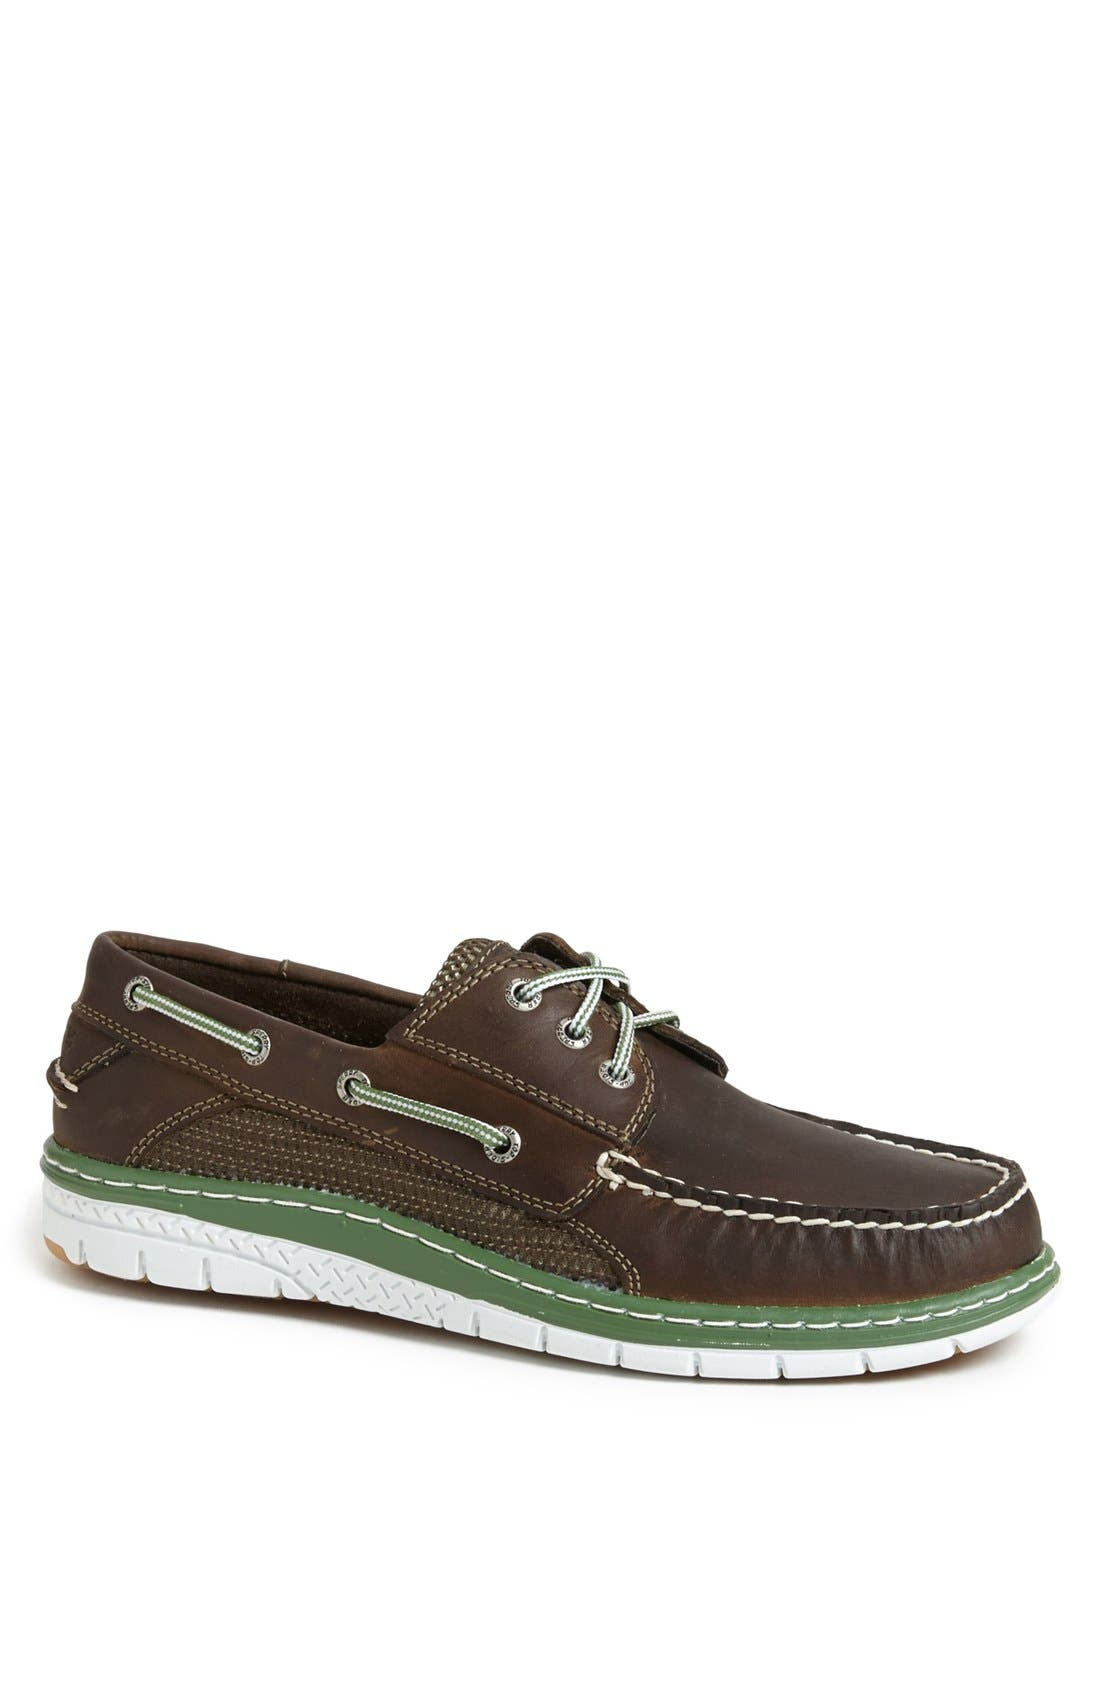 'Billfish Ultralite' Boat Shoe,                             Main thumbnail 11, color,